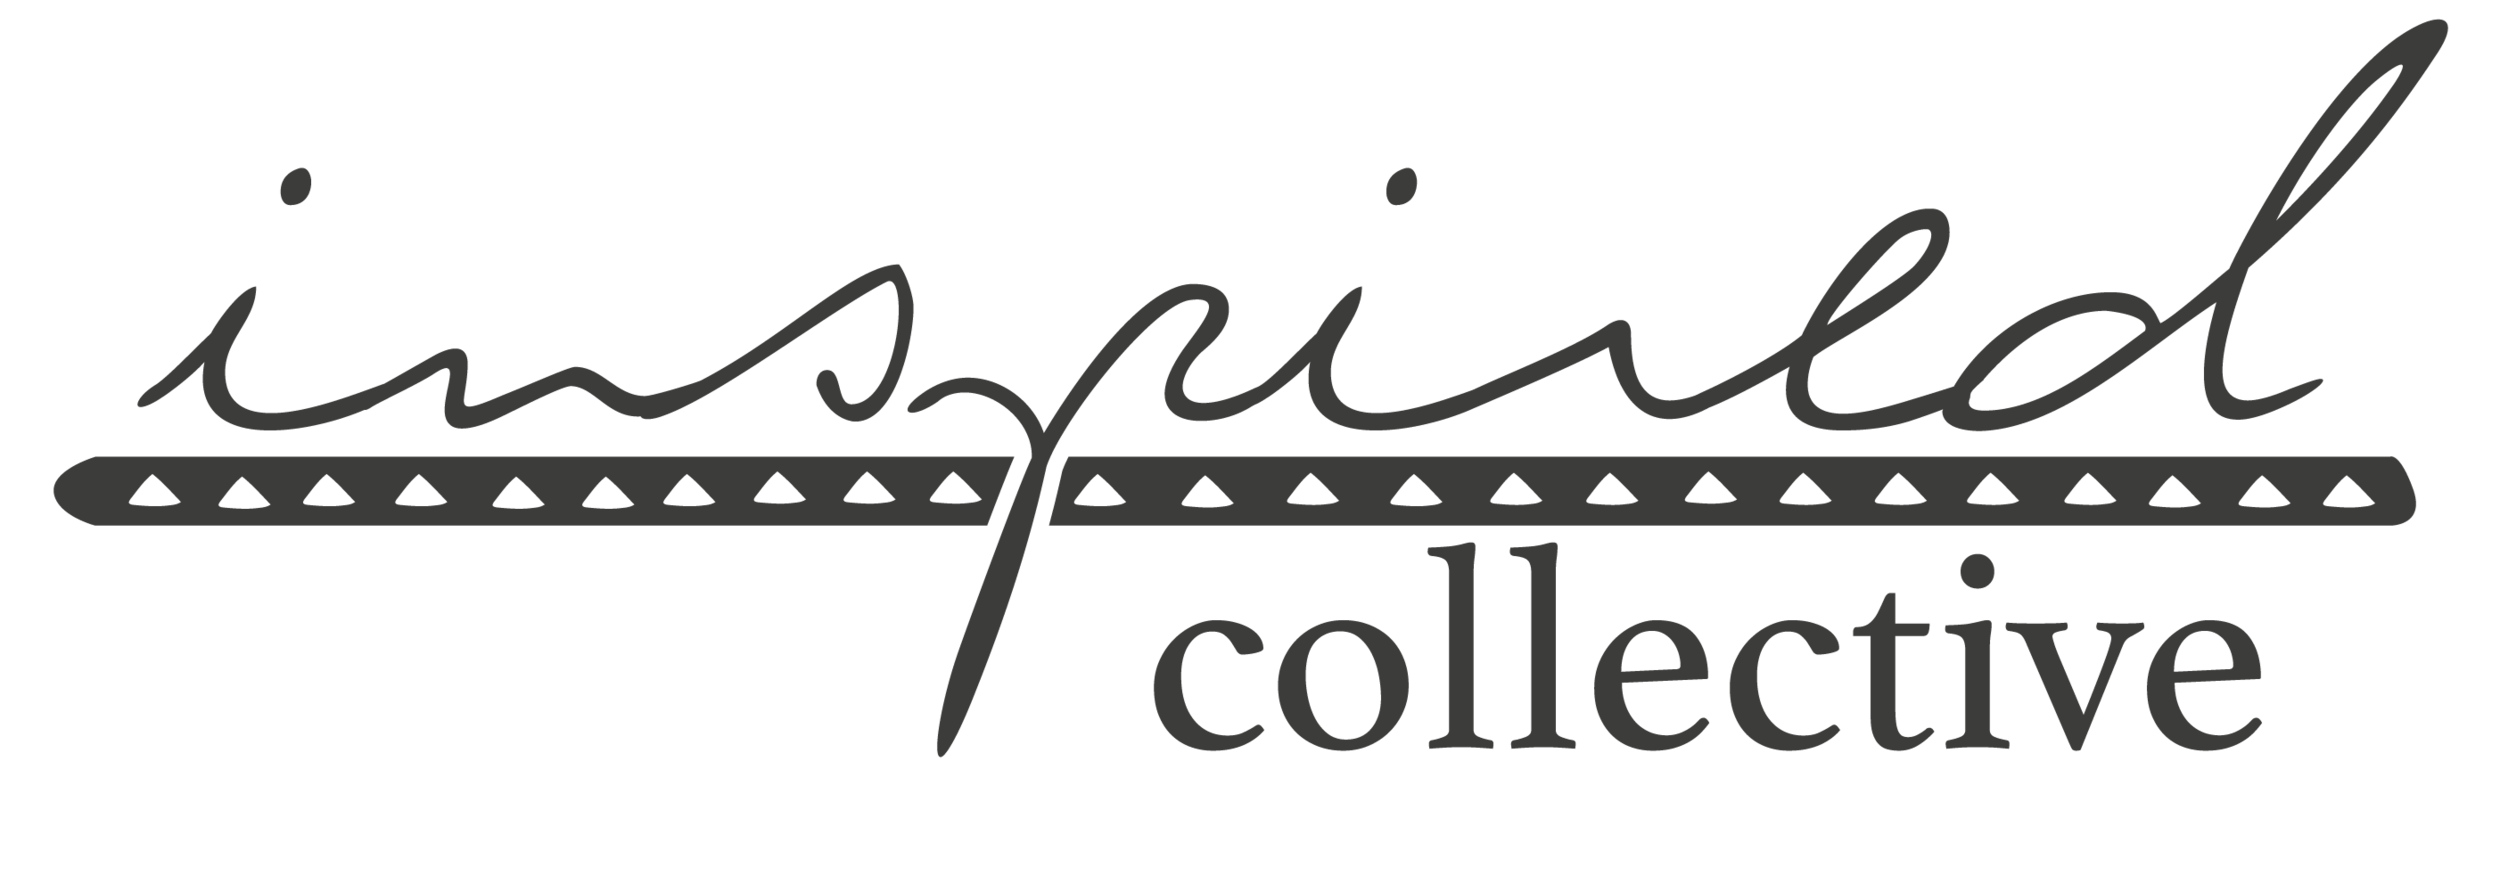 Inspired-Collective-Logo_Black.png